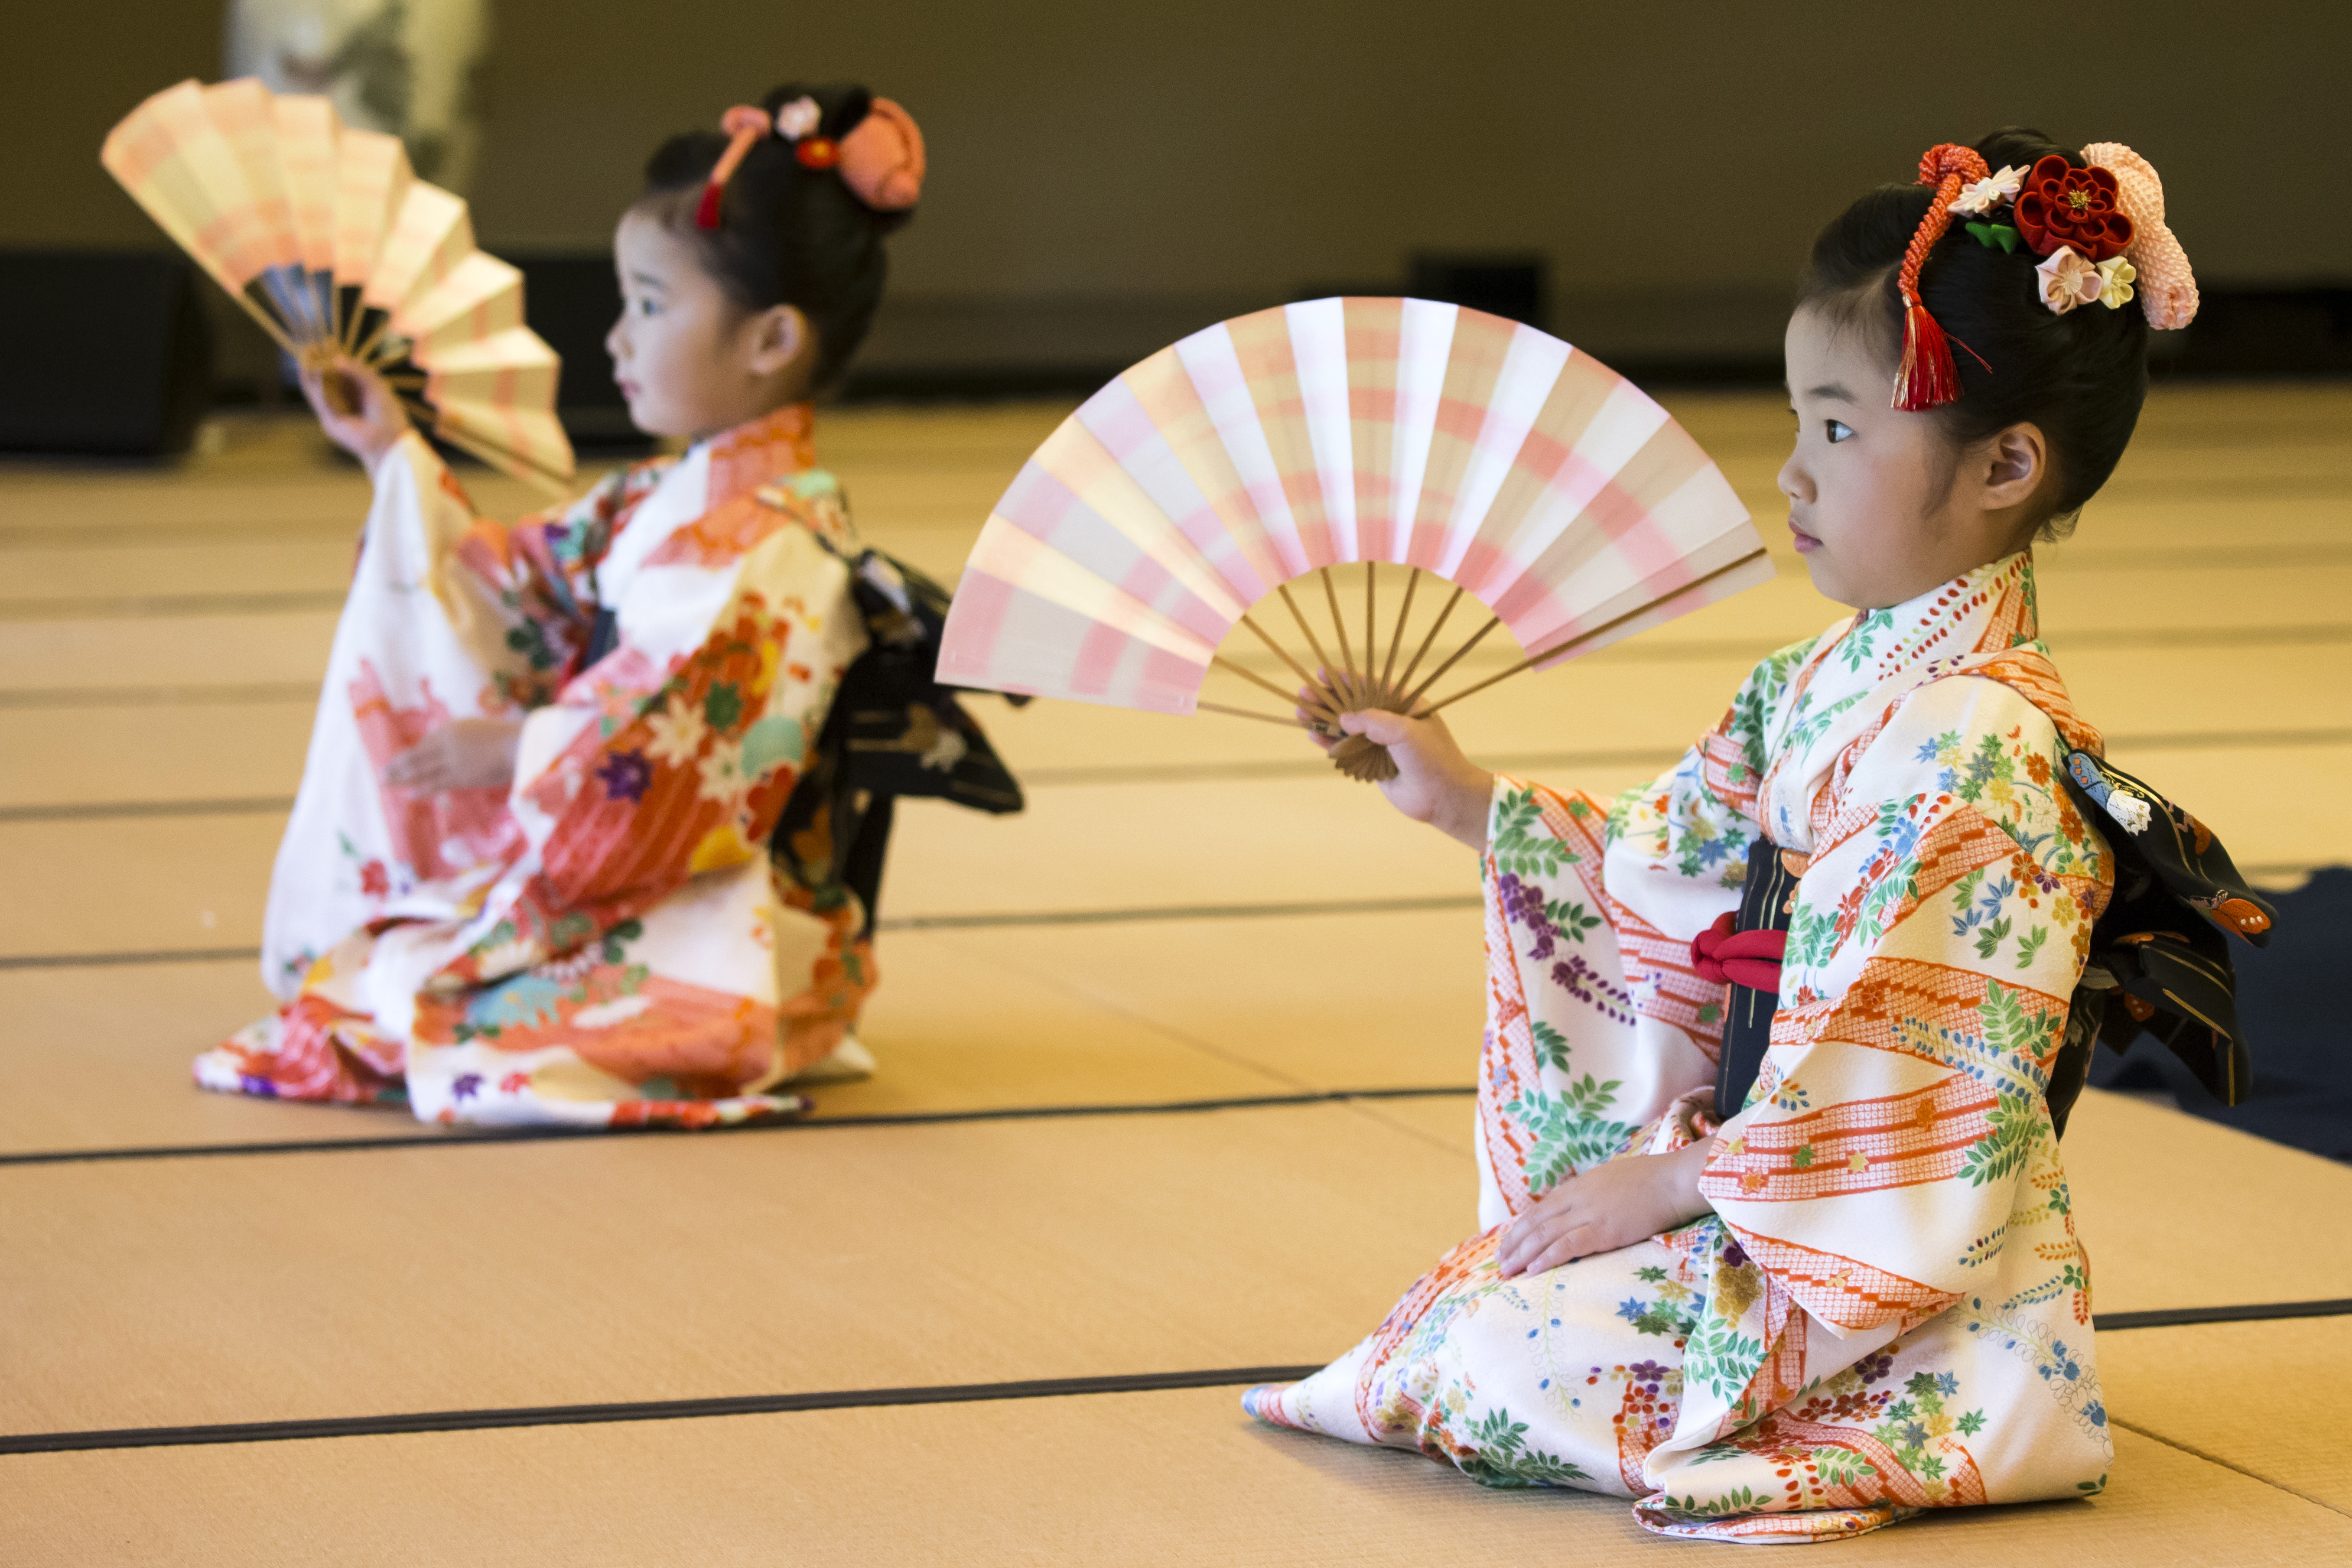 TOKYO, JAPAN - MAY 27: Children perform a traditional dance for U.S. First Lady Melania Trump and Akie Abe, wife of Japanese Prime Minister Shinzo Abe (both not pictured) during a cultural event at the Japanese style annex inside the State Guest House on May 27, 2019 in Tokyo, Japan. President Donald Trump is on the third day of a four day state visit to Japan, the first official visit of the country's Reiwa era. Alongside a number of engagements, Mr Trump was guest of honour at a Sumo wrestling match on Sunday and is expected to meet families of North Korean abductees. (Photo by Tomohiro Ohsumi/Getty Images)